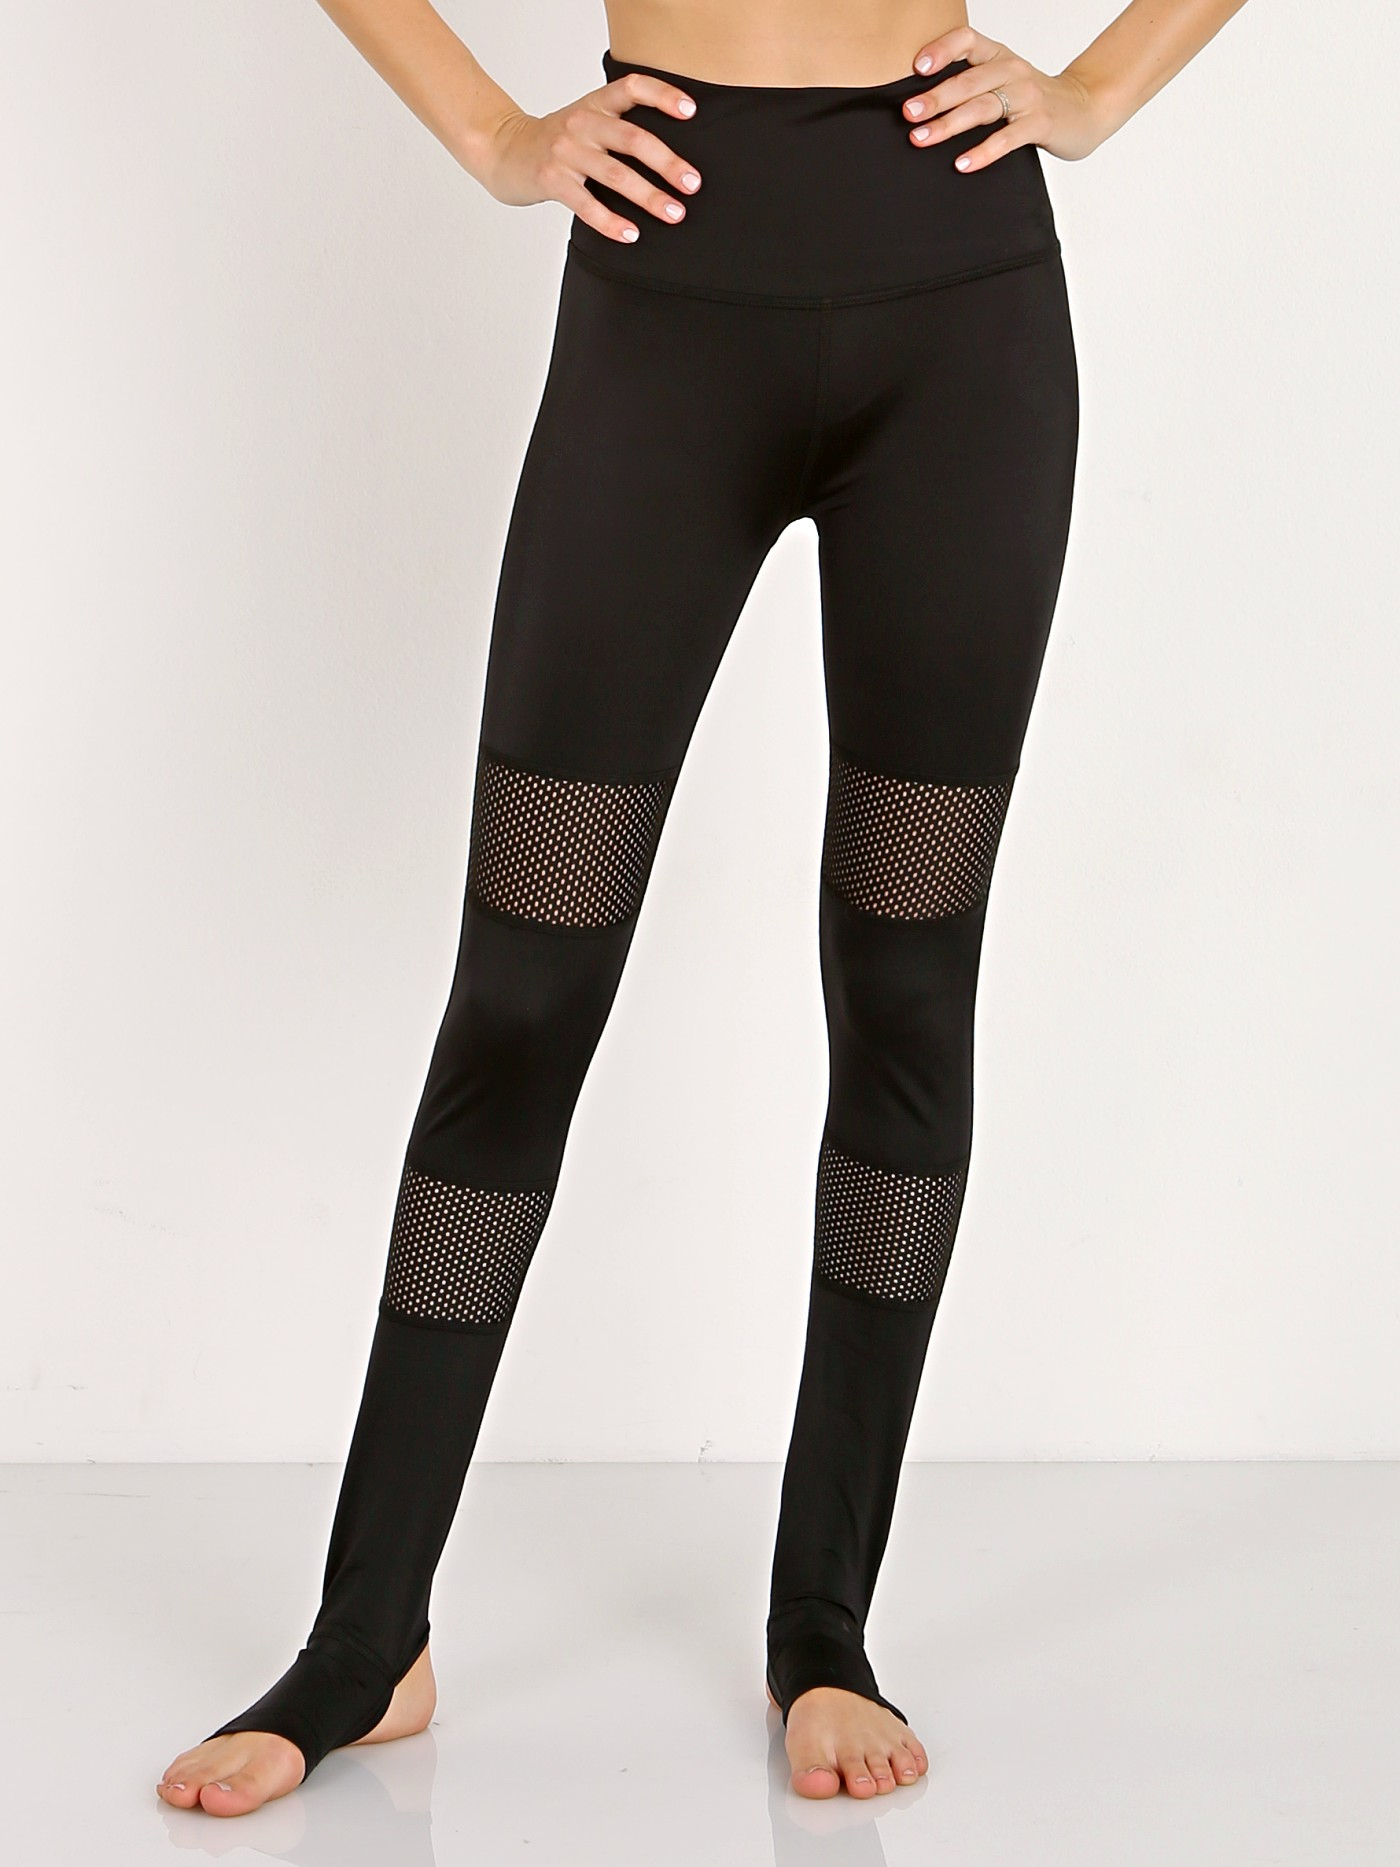 2d1a1debb5f74 Beyond Yoga Blocked Out High Waisted Stirrup Legging Black CL3269 - Free  Shipping at Largo Drive